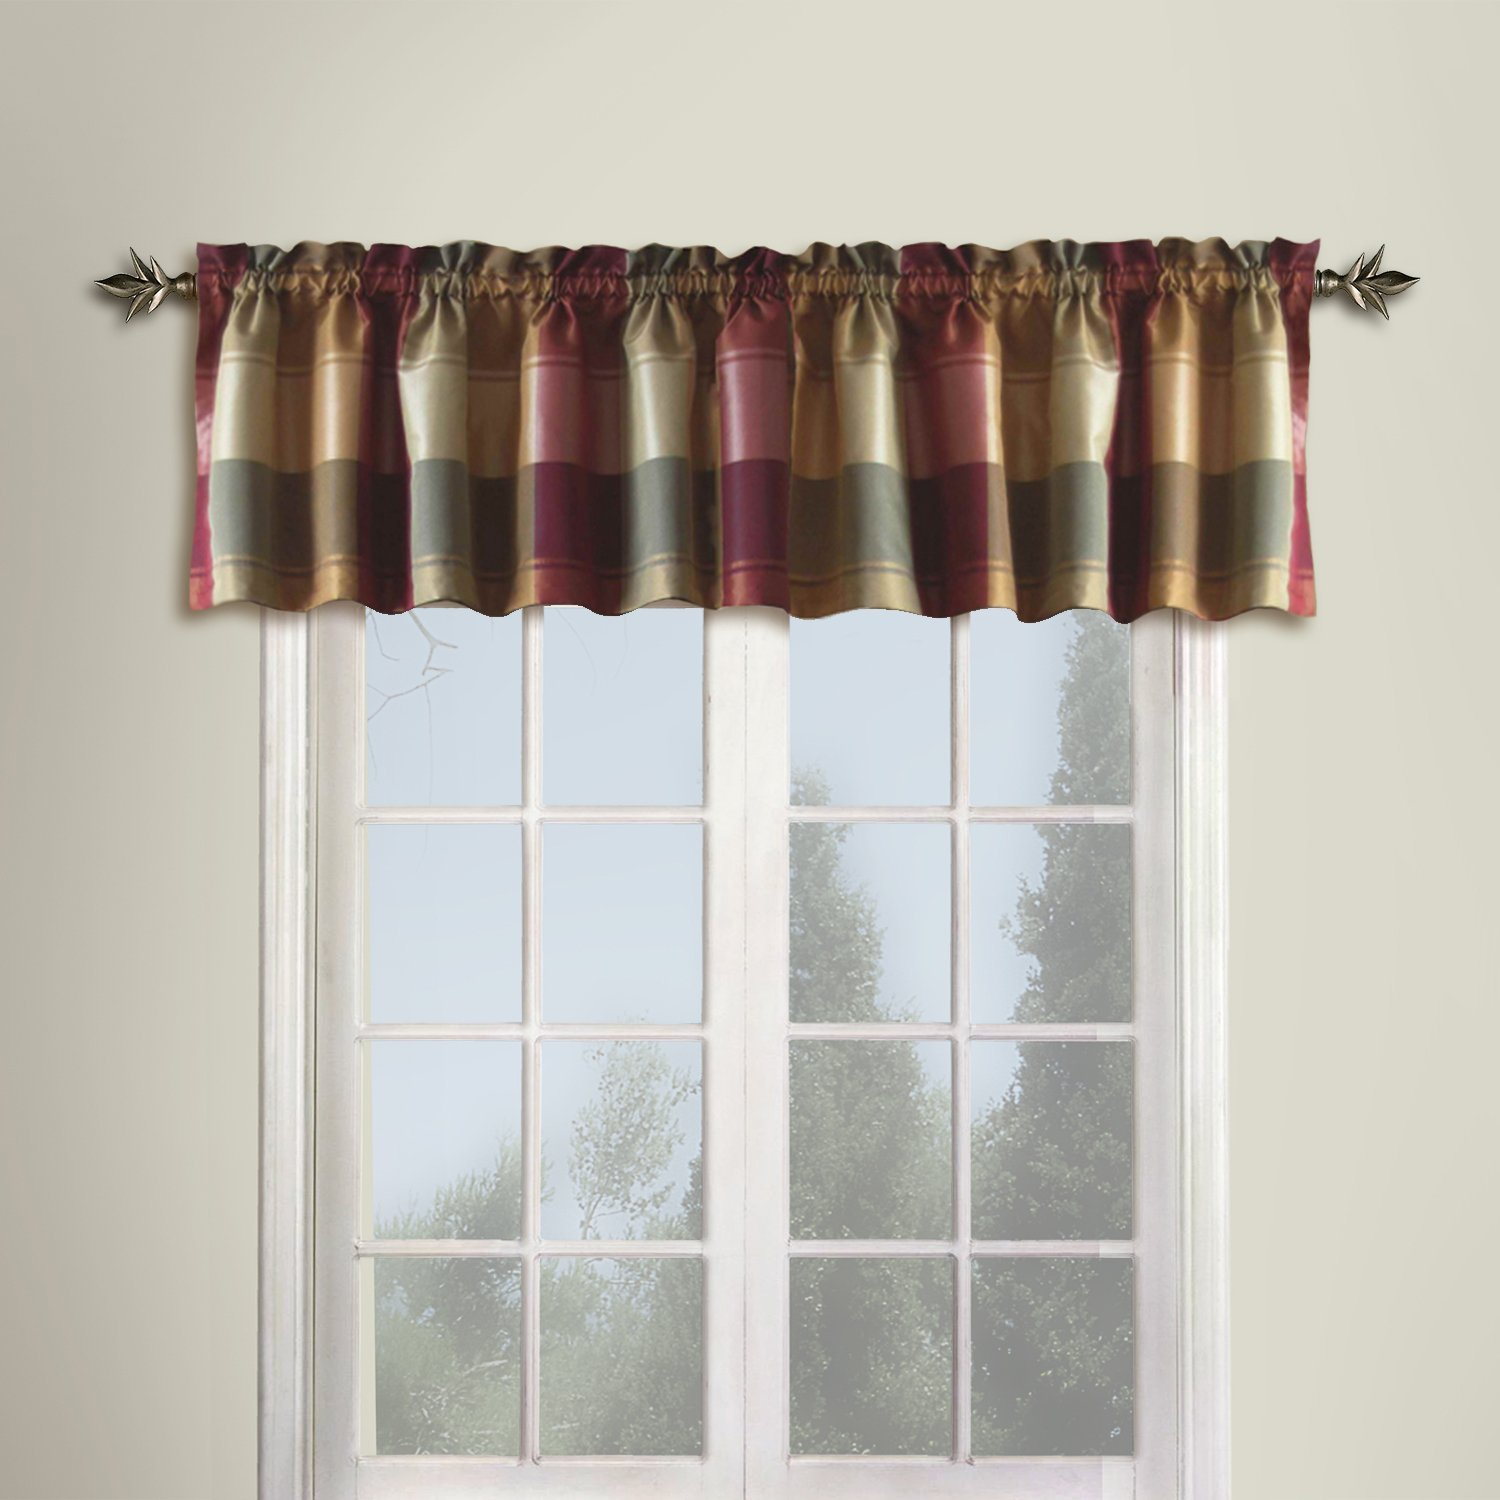 curtains with valance amazon.com: united curtain plaid straight valance, 54 by 18-inch, burgundy:  home u0026 OLAMUJB